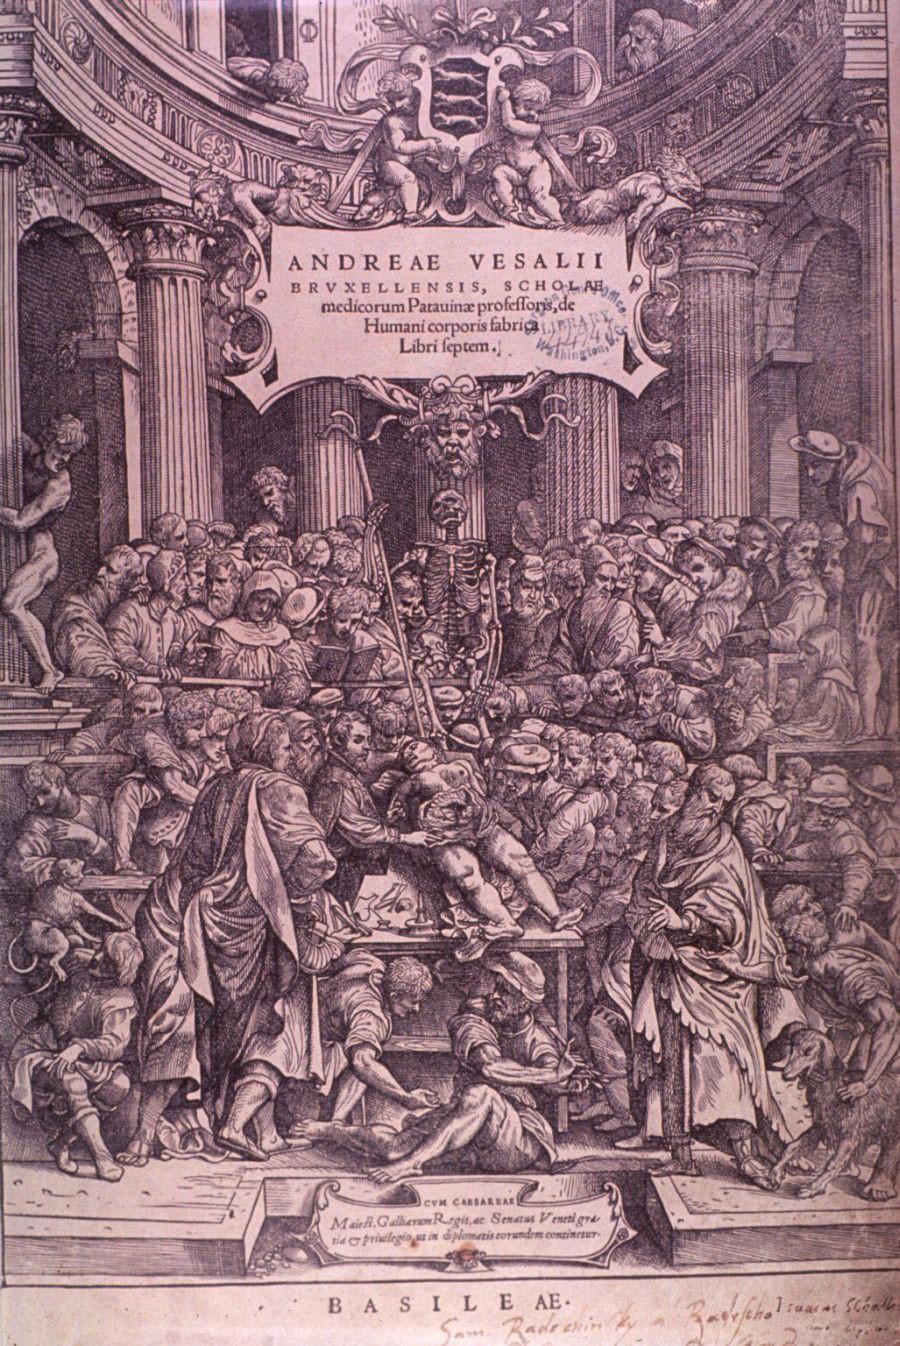 Vesalius performing dissection; Title page of book showing the dissection of a female criminal.